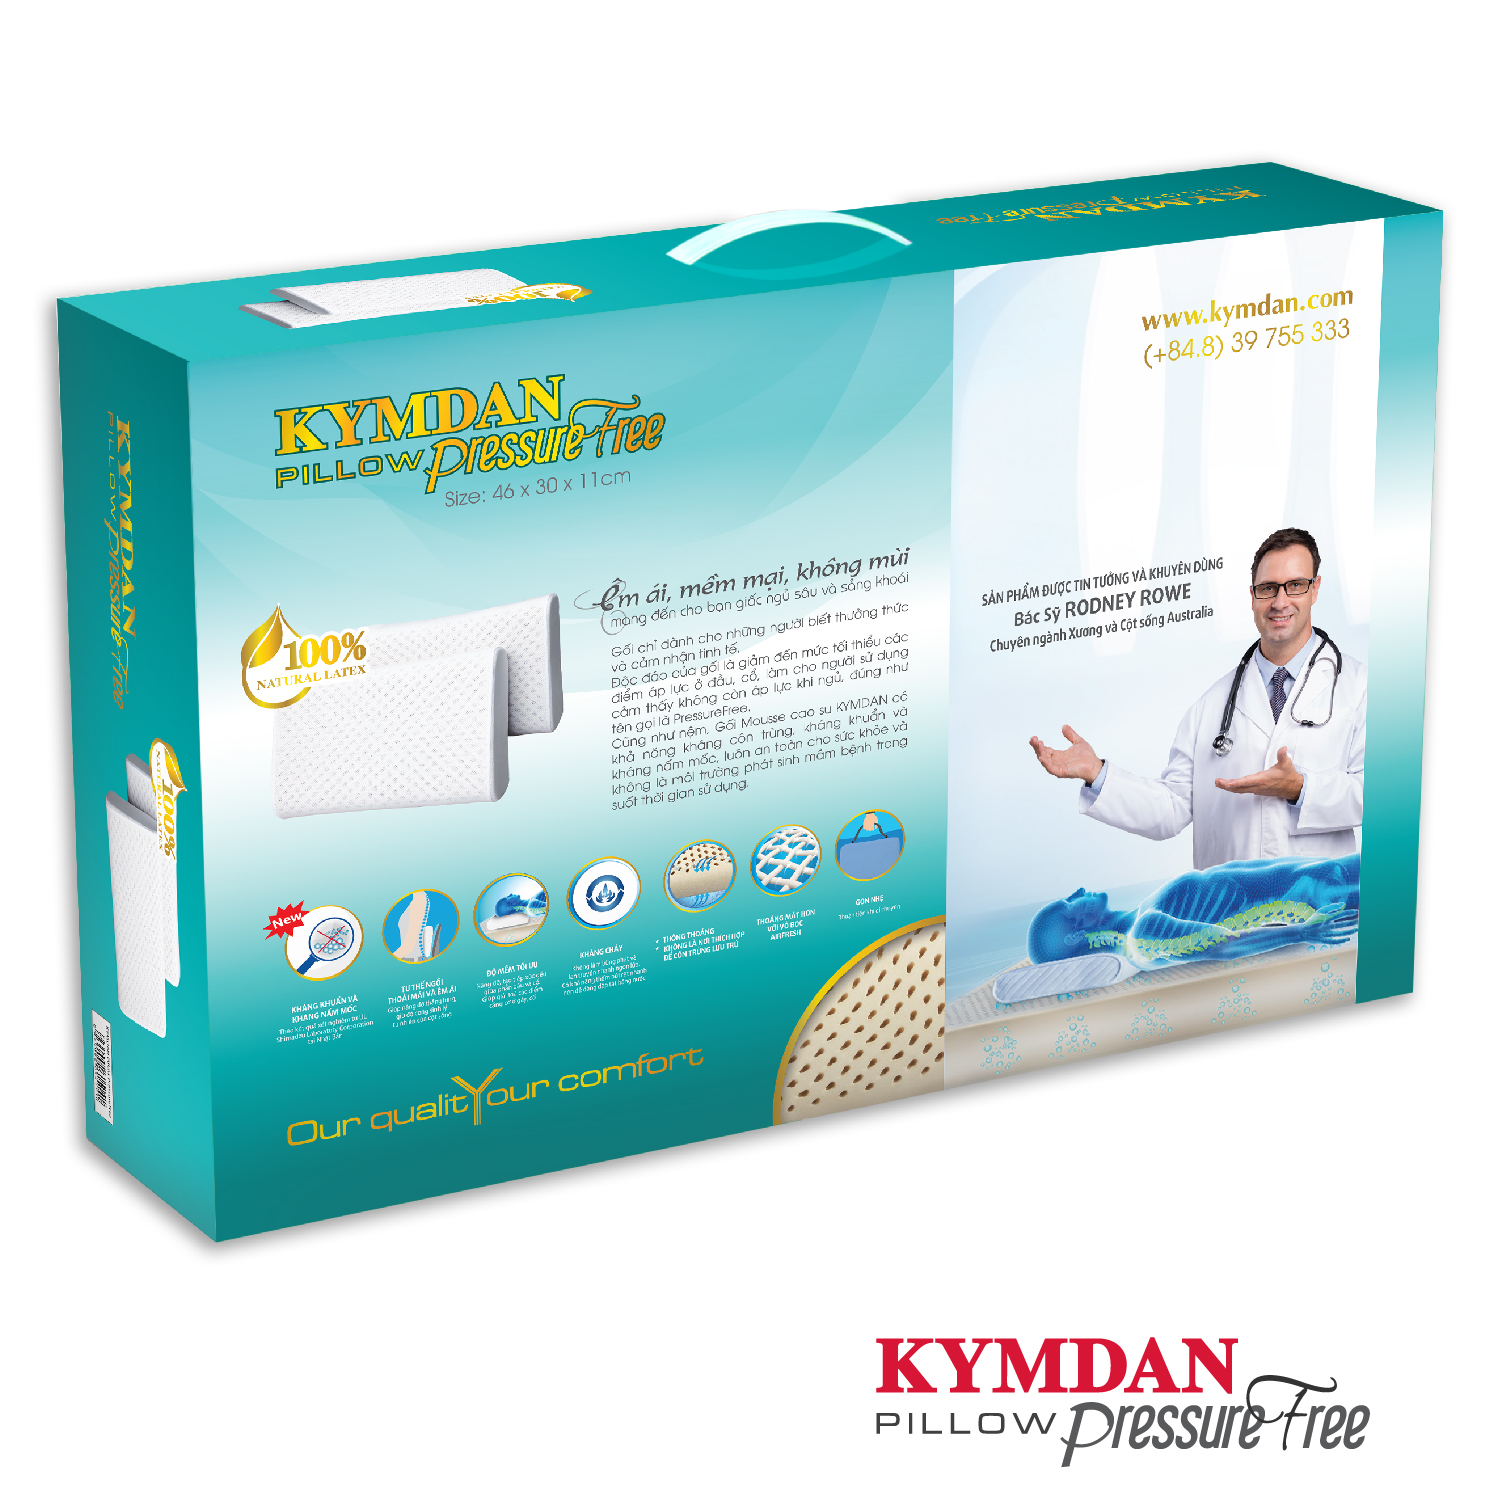 Gối Kymdan Pillow PressureFree